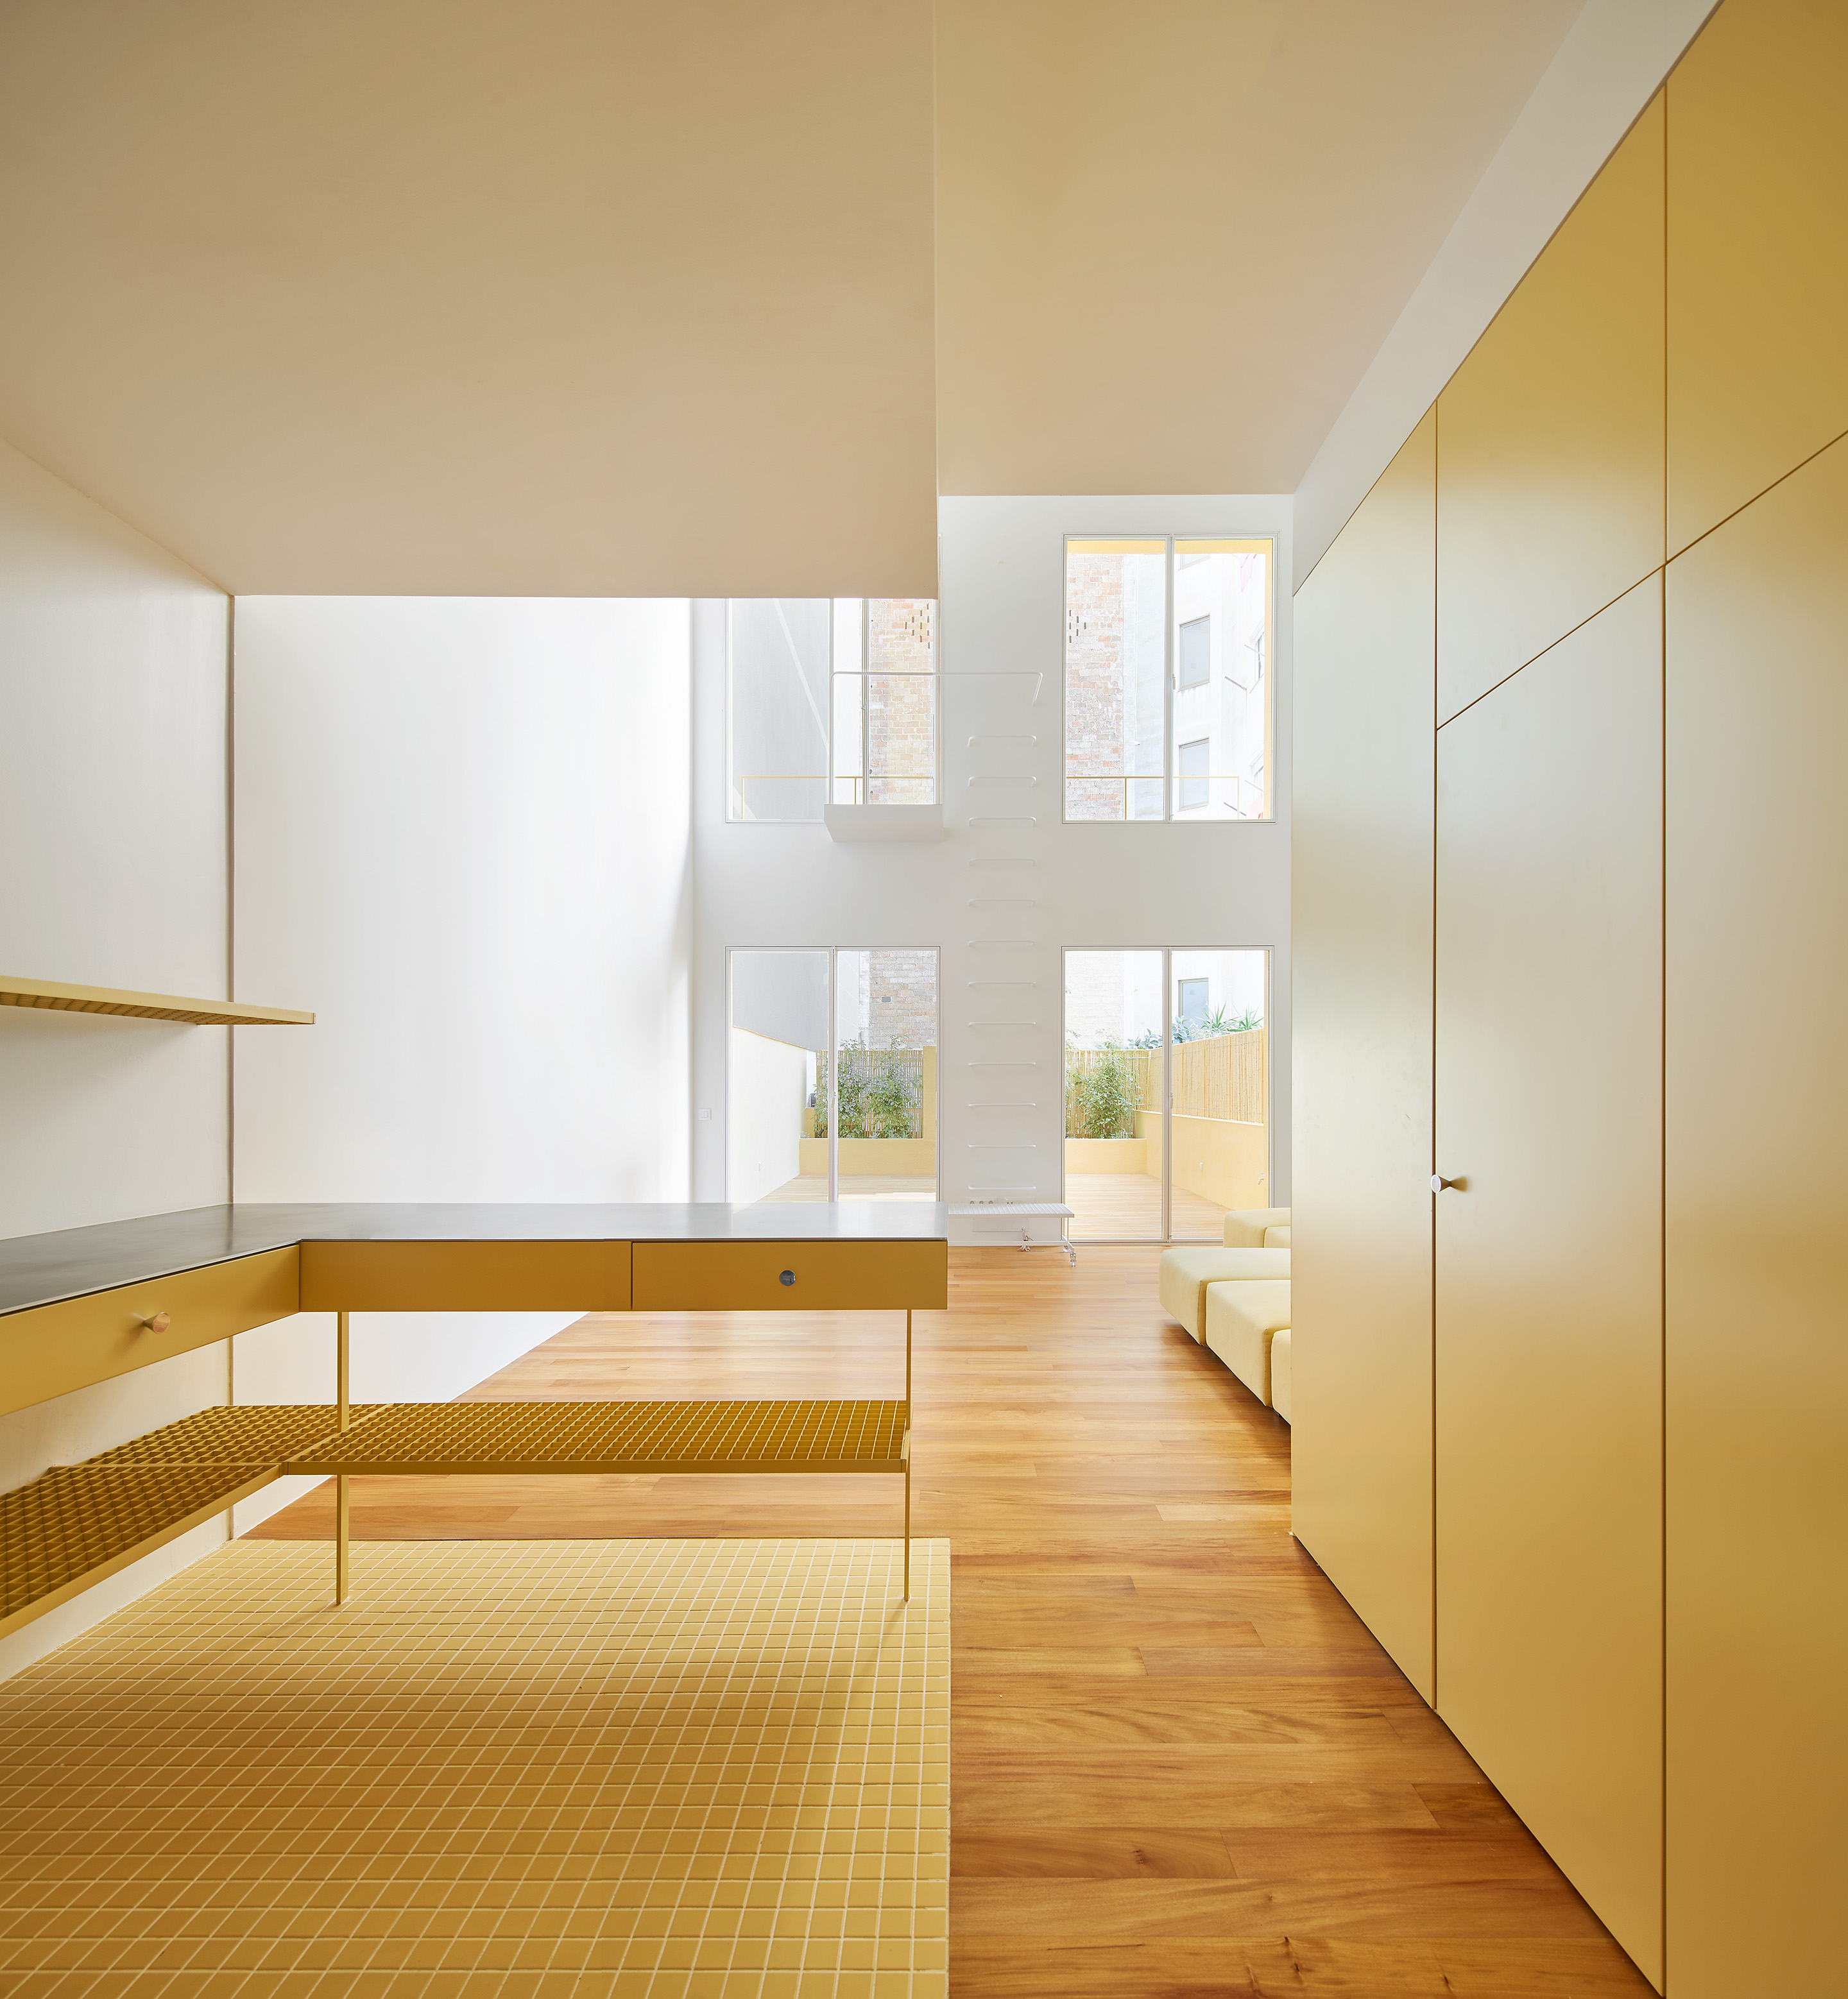 Sunny apartment basks in head-to-toe yellow